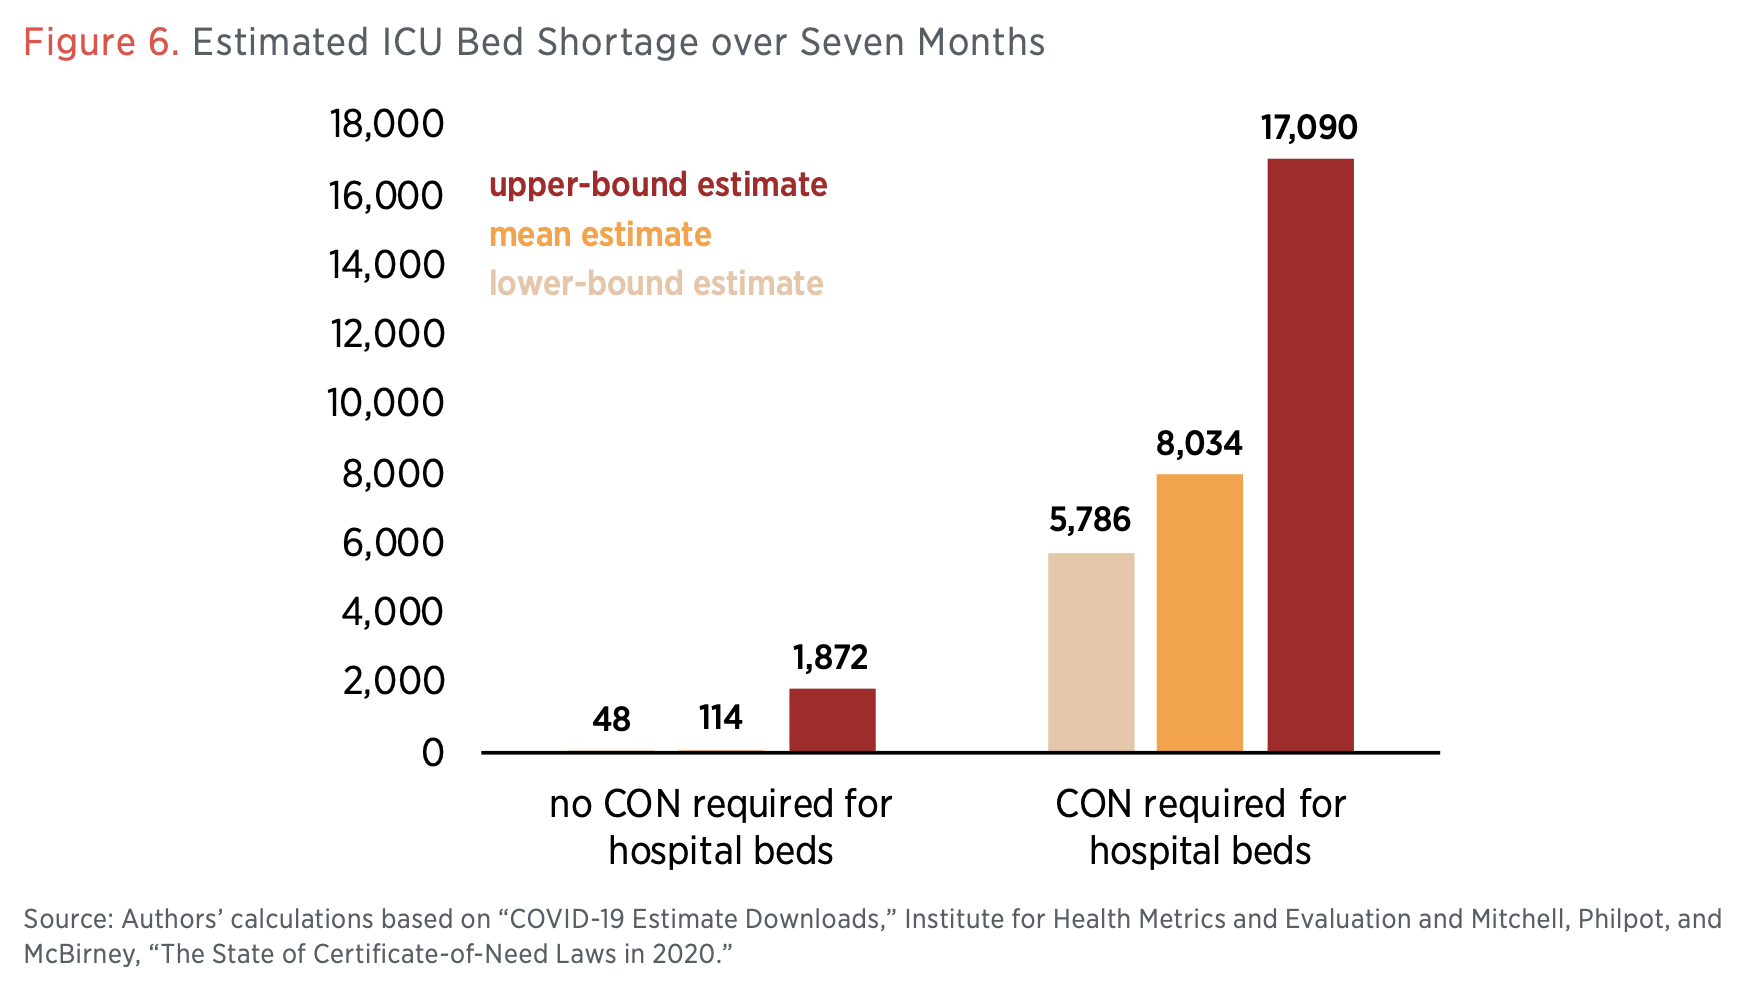 Figure 6. Estimated ICU Bed Shortage over Seven Months